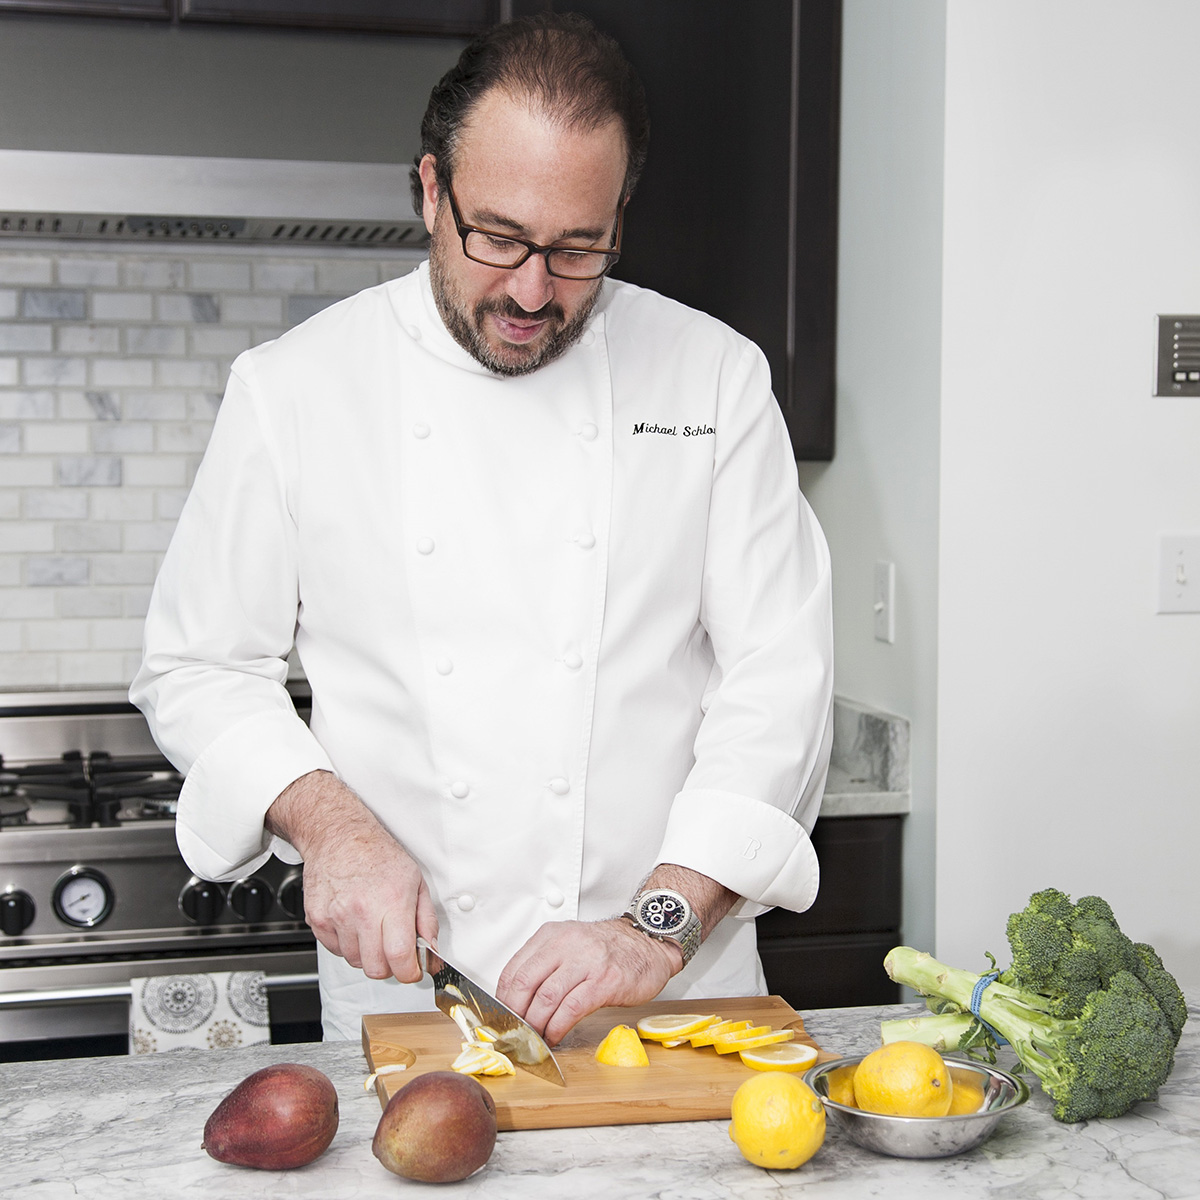 Chef Michael Schlow. / Photo provided